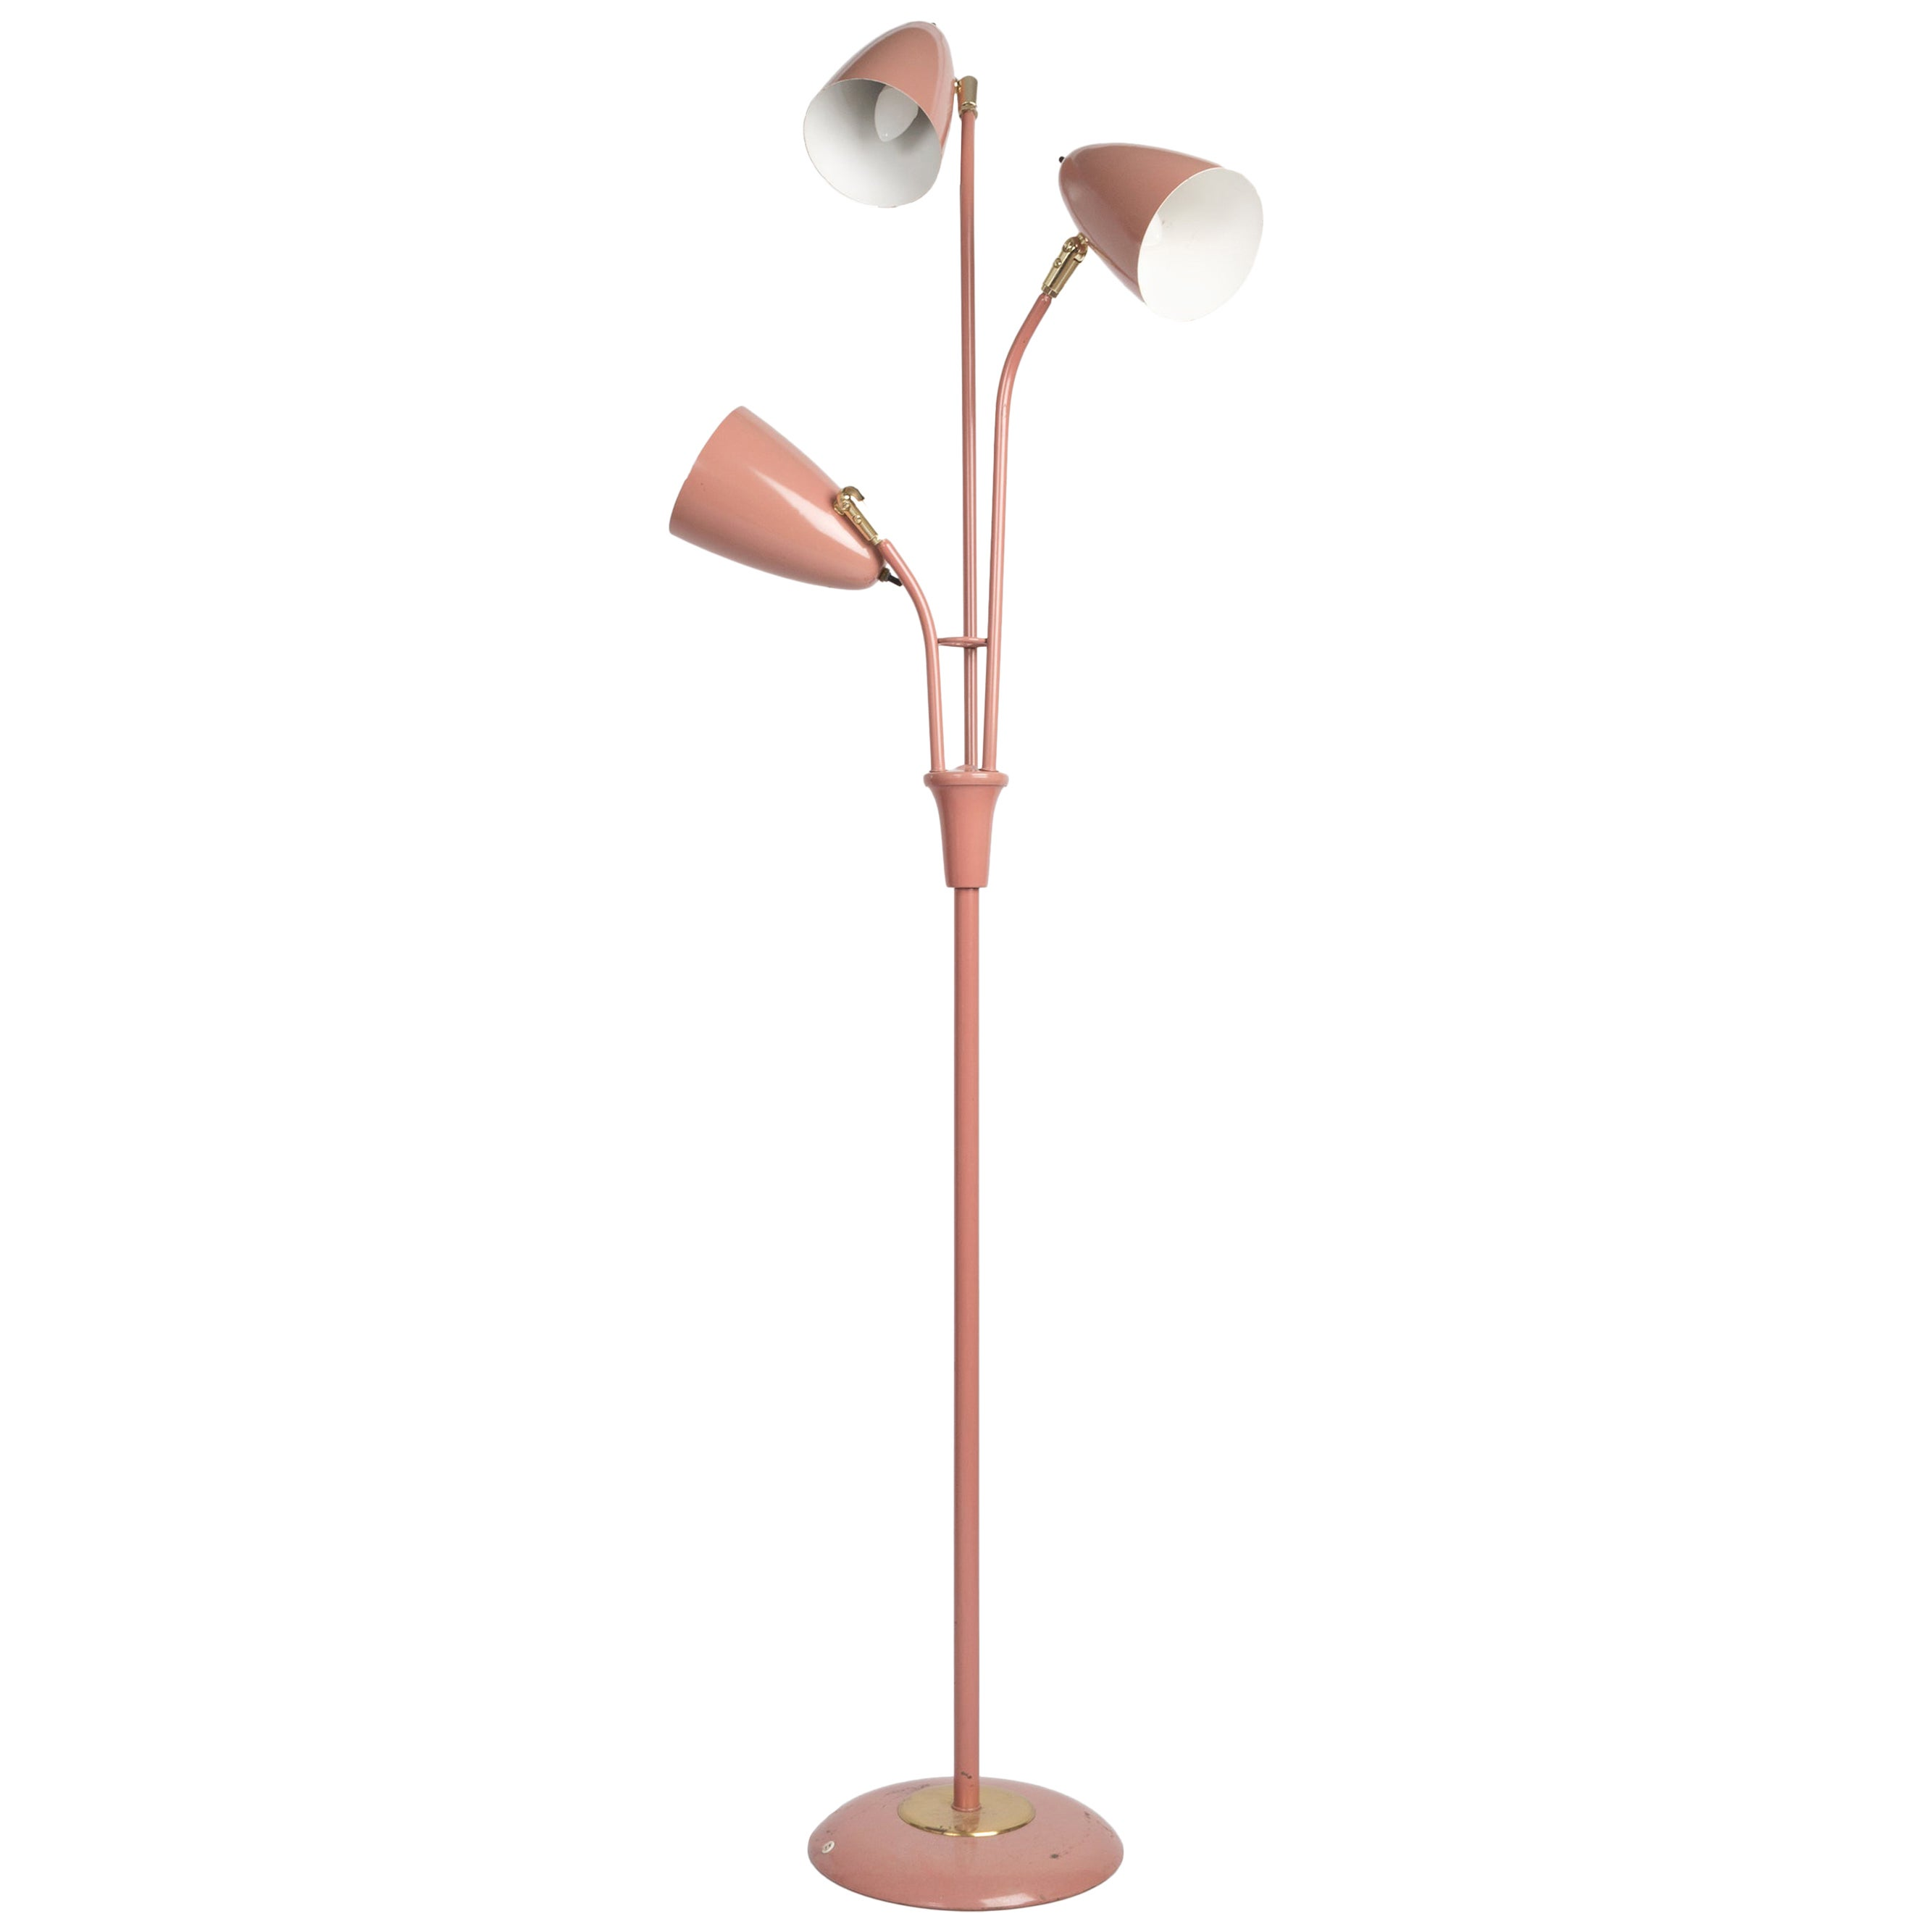 1950s Gerald Thurston Triennale Floor Lamp for Lightolier, USA